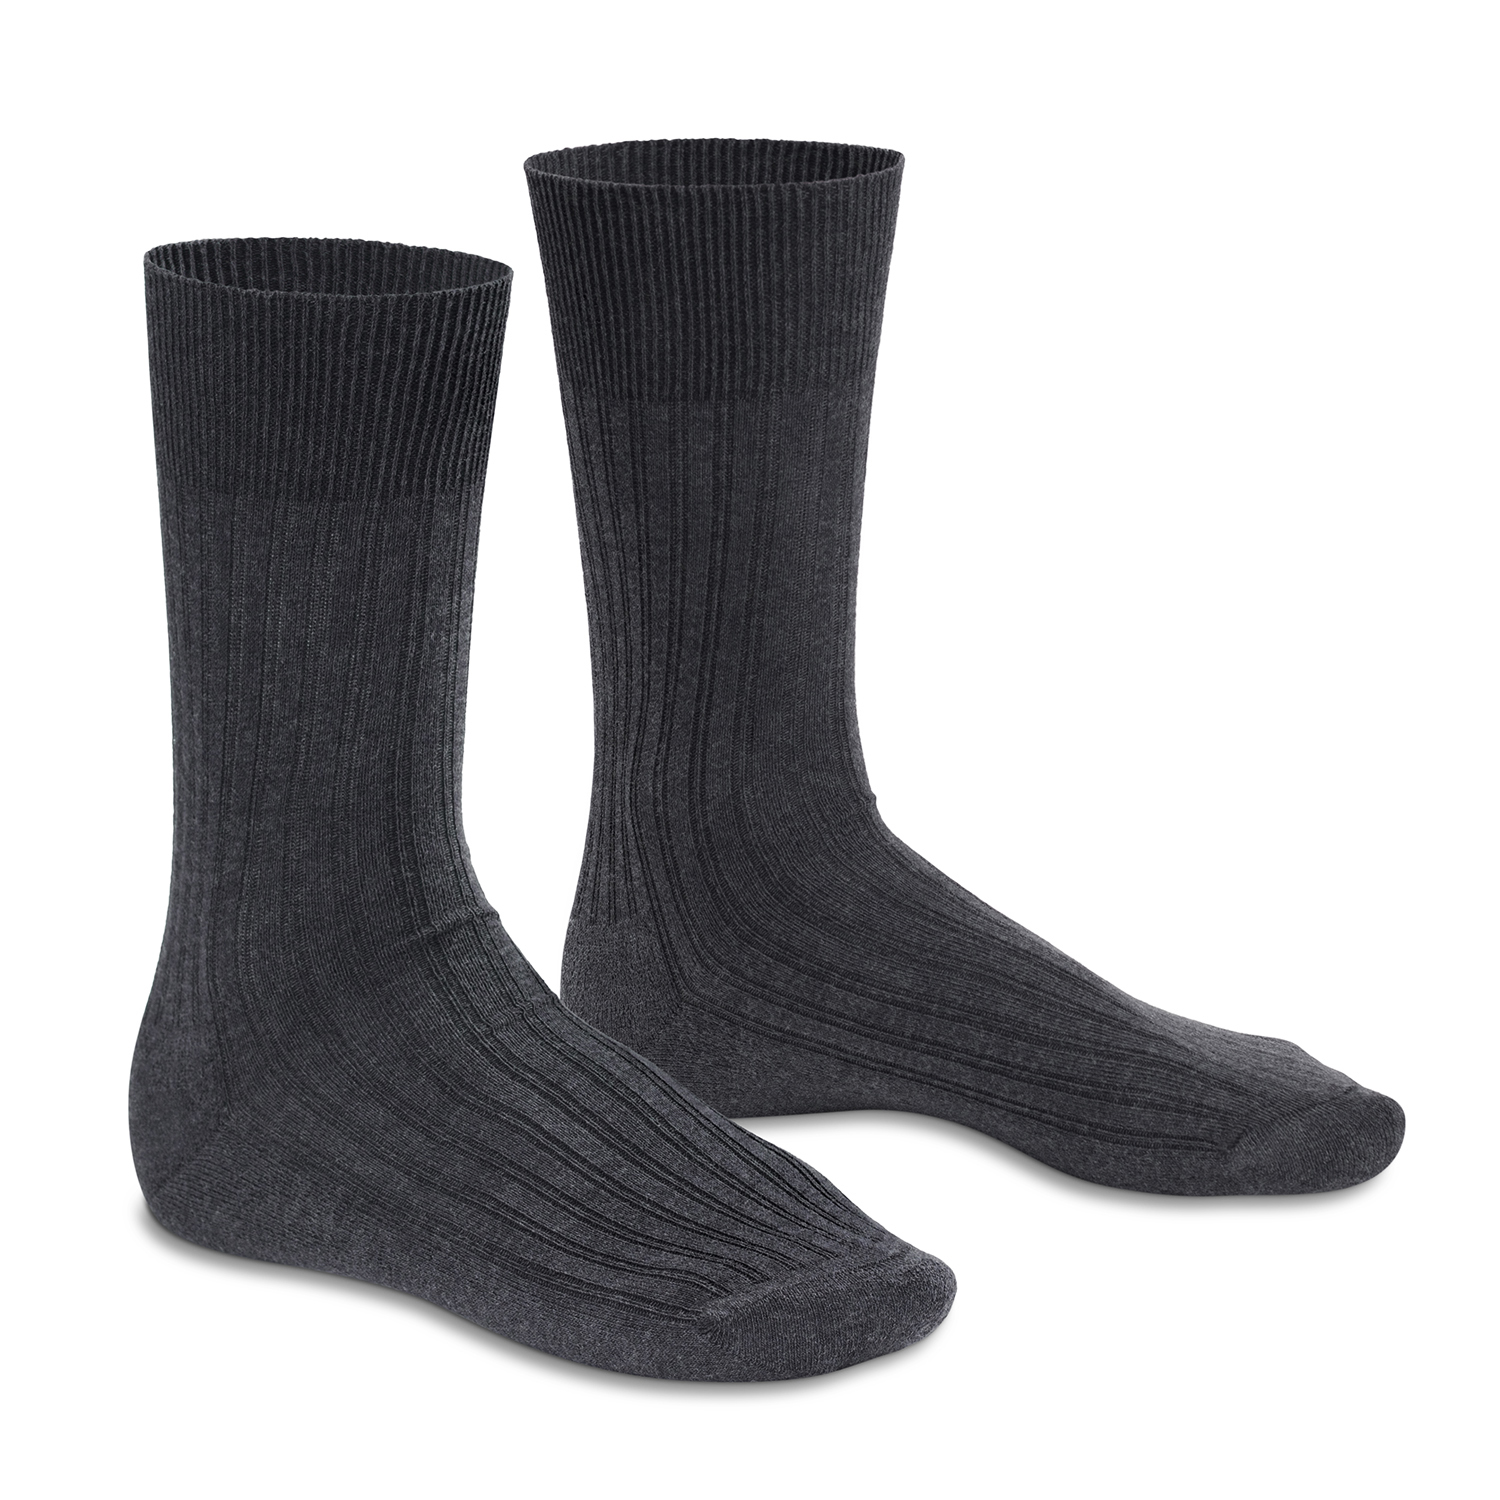 6 Paar Damen Thermosocken warme Wintersocken Active Sportsocken Outdoorsocken